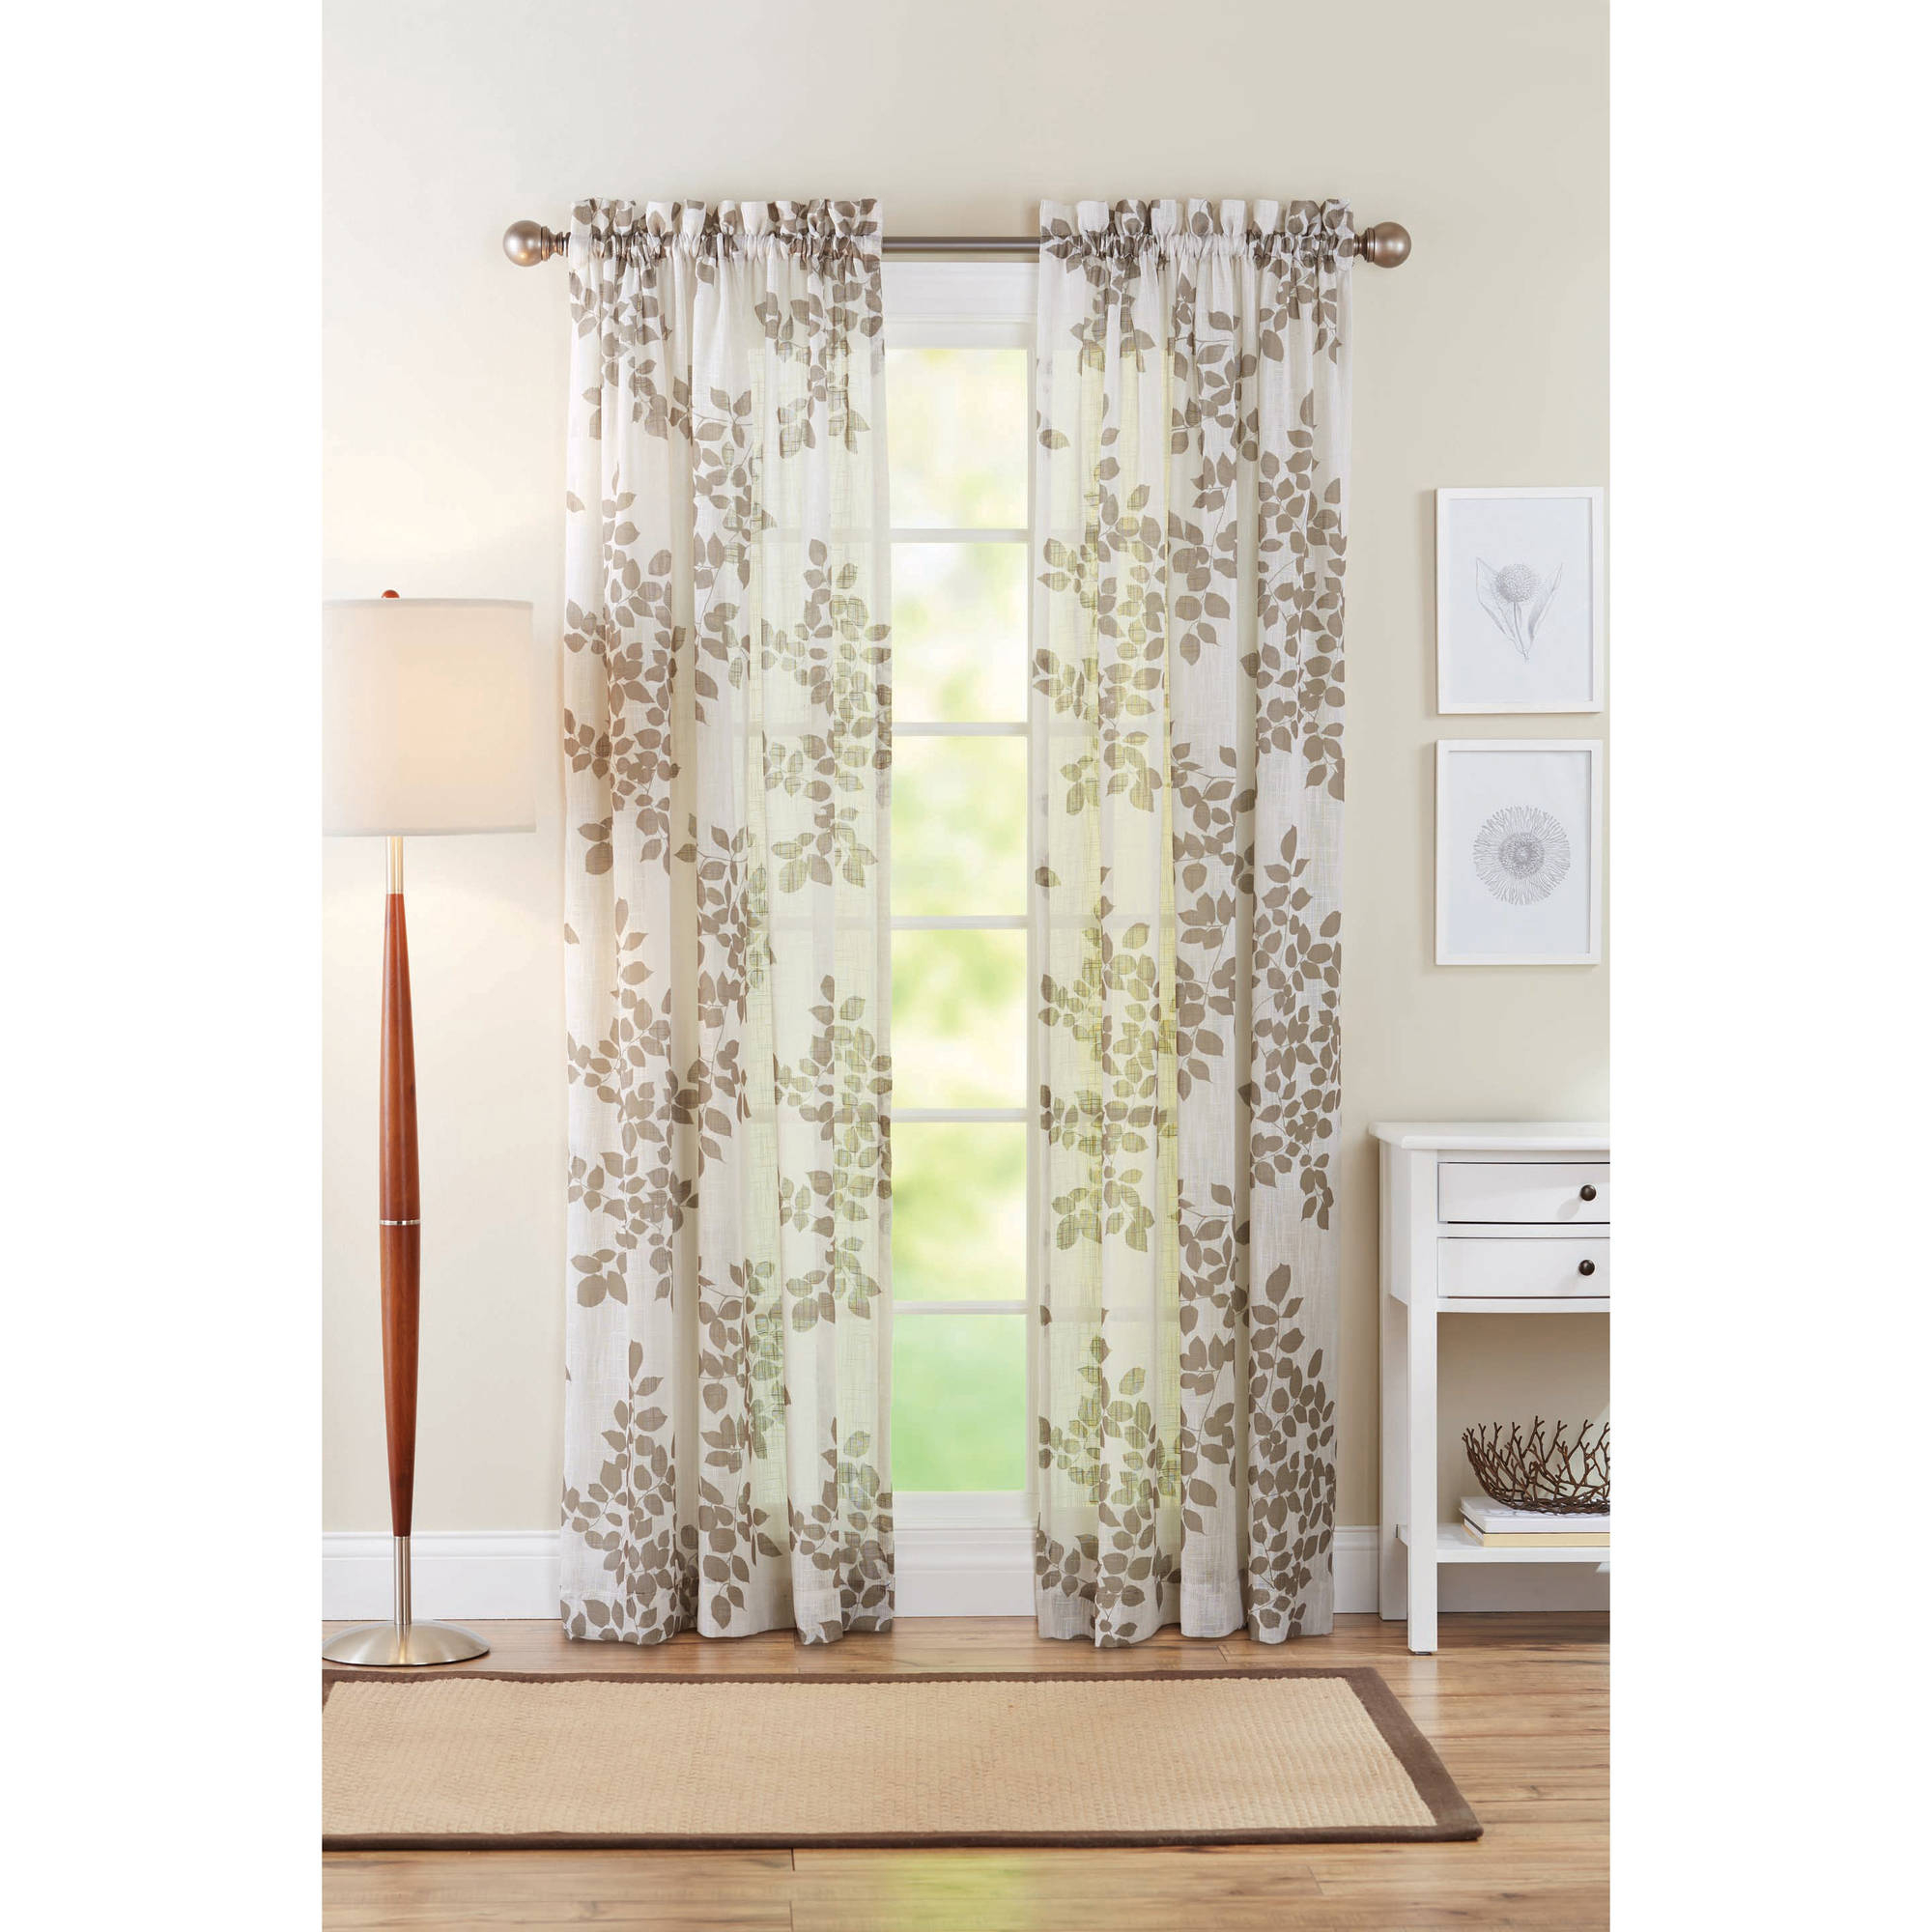 Better Homes And Gardens Faux Linen Leaves Polyester Curtain Panel, Taupe Intended For Heavy Faux Linen Single Curtain Panels (View 19 of 20)